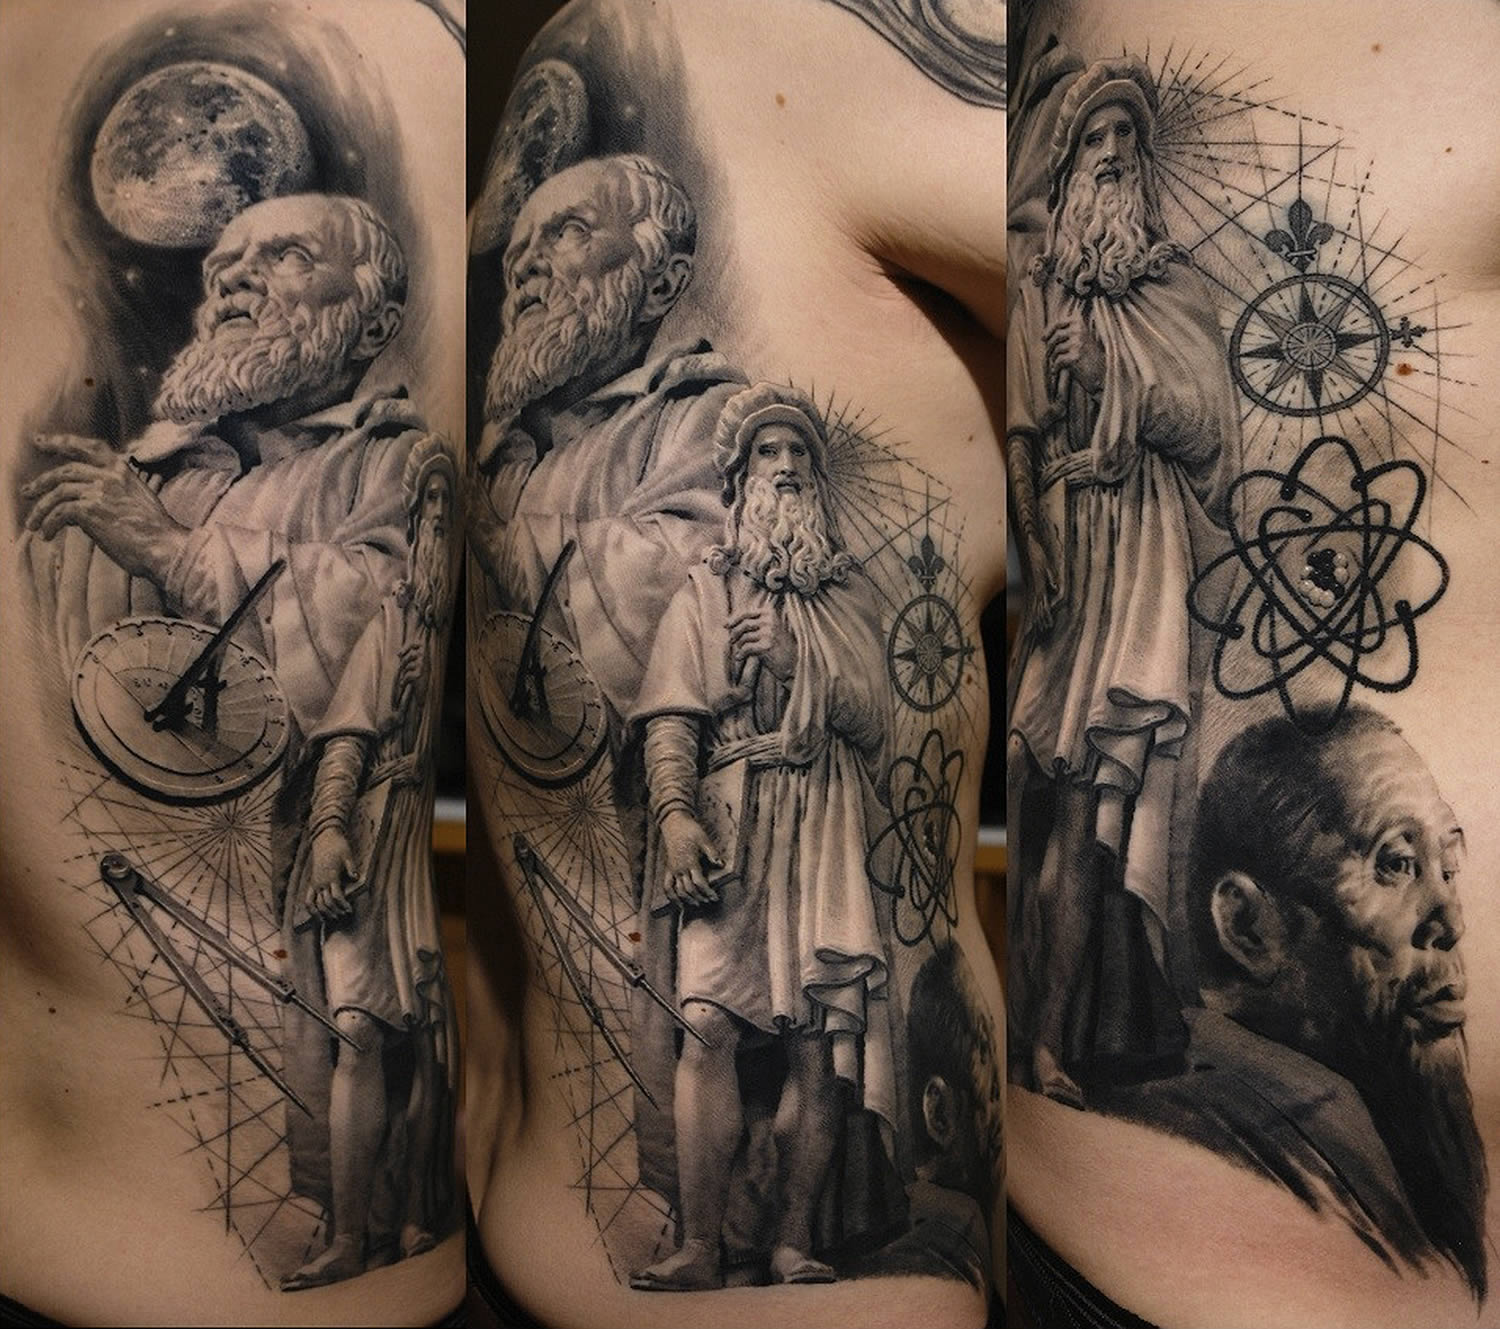 sculpture of columbus tattoo by sergiu sanchez